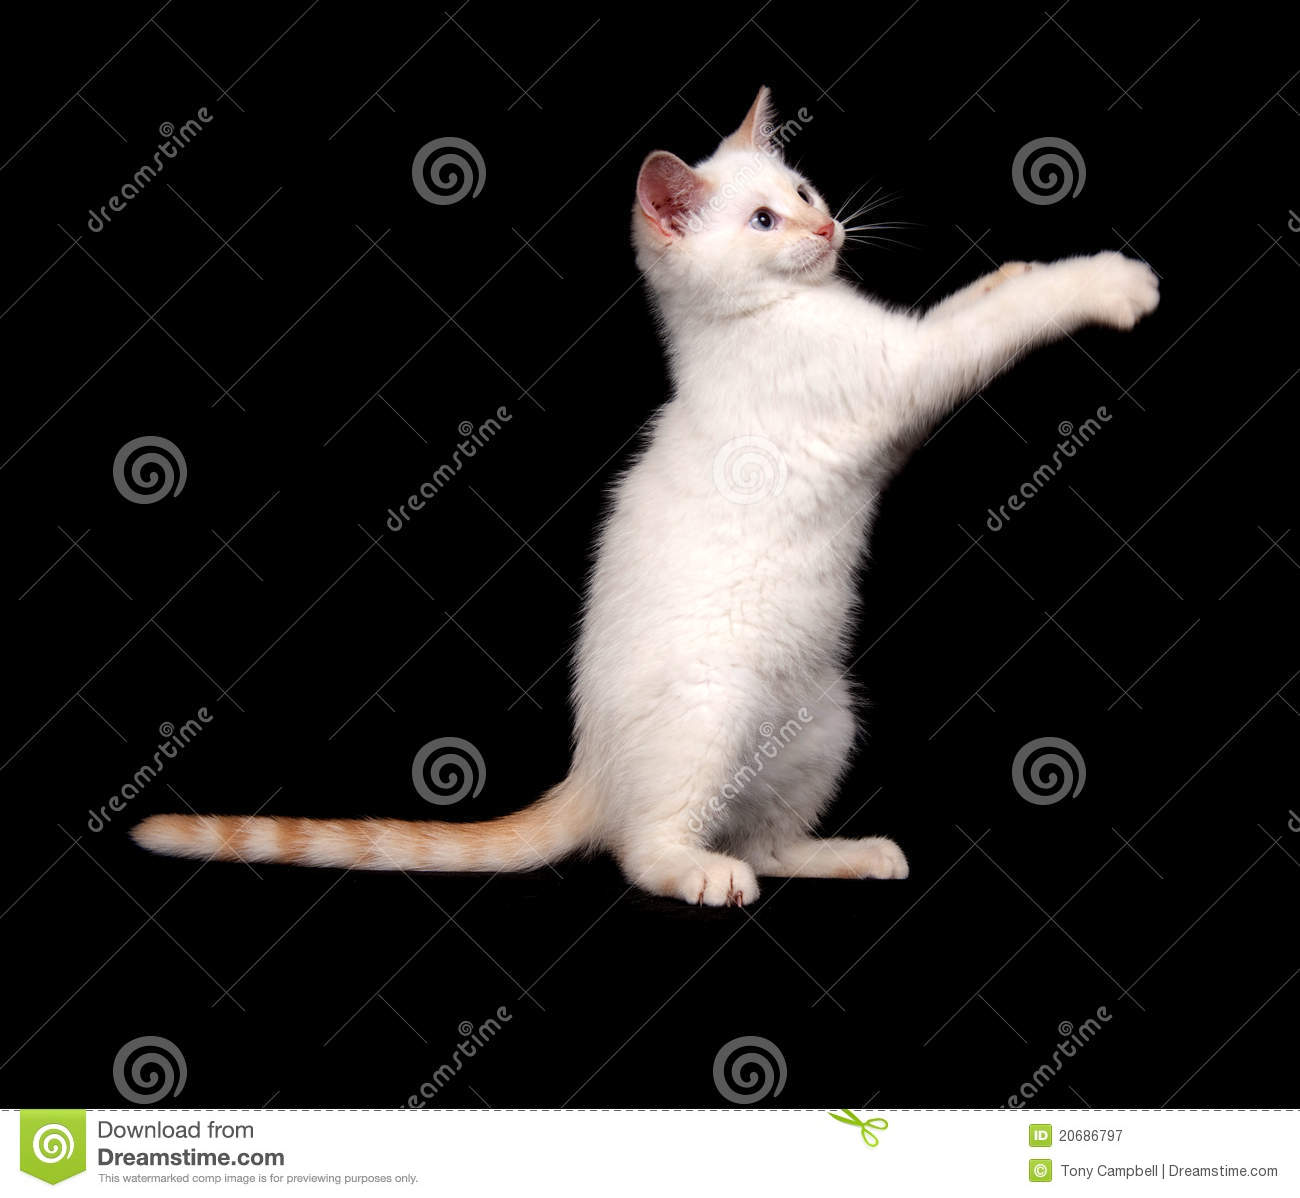 cute white cat on black background stock image image of cute baby